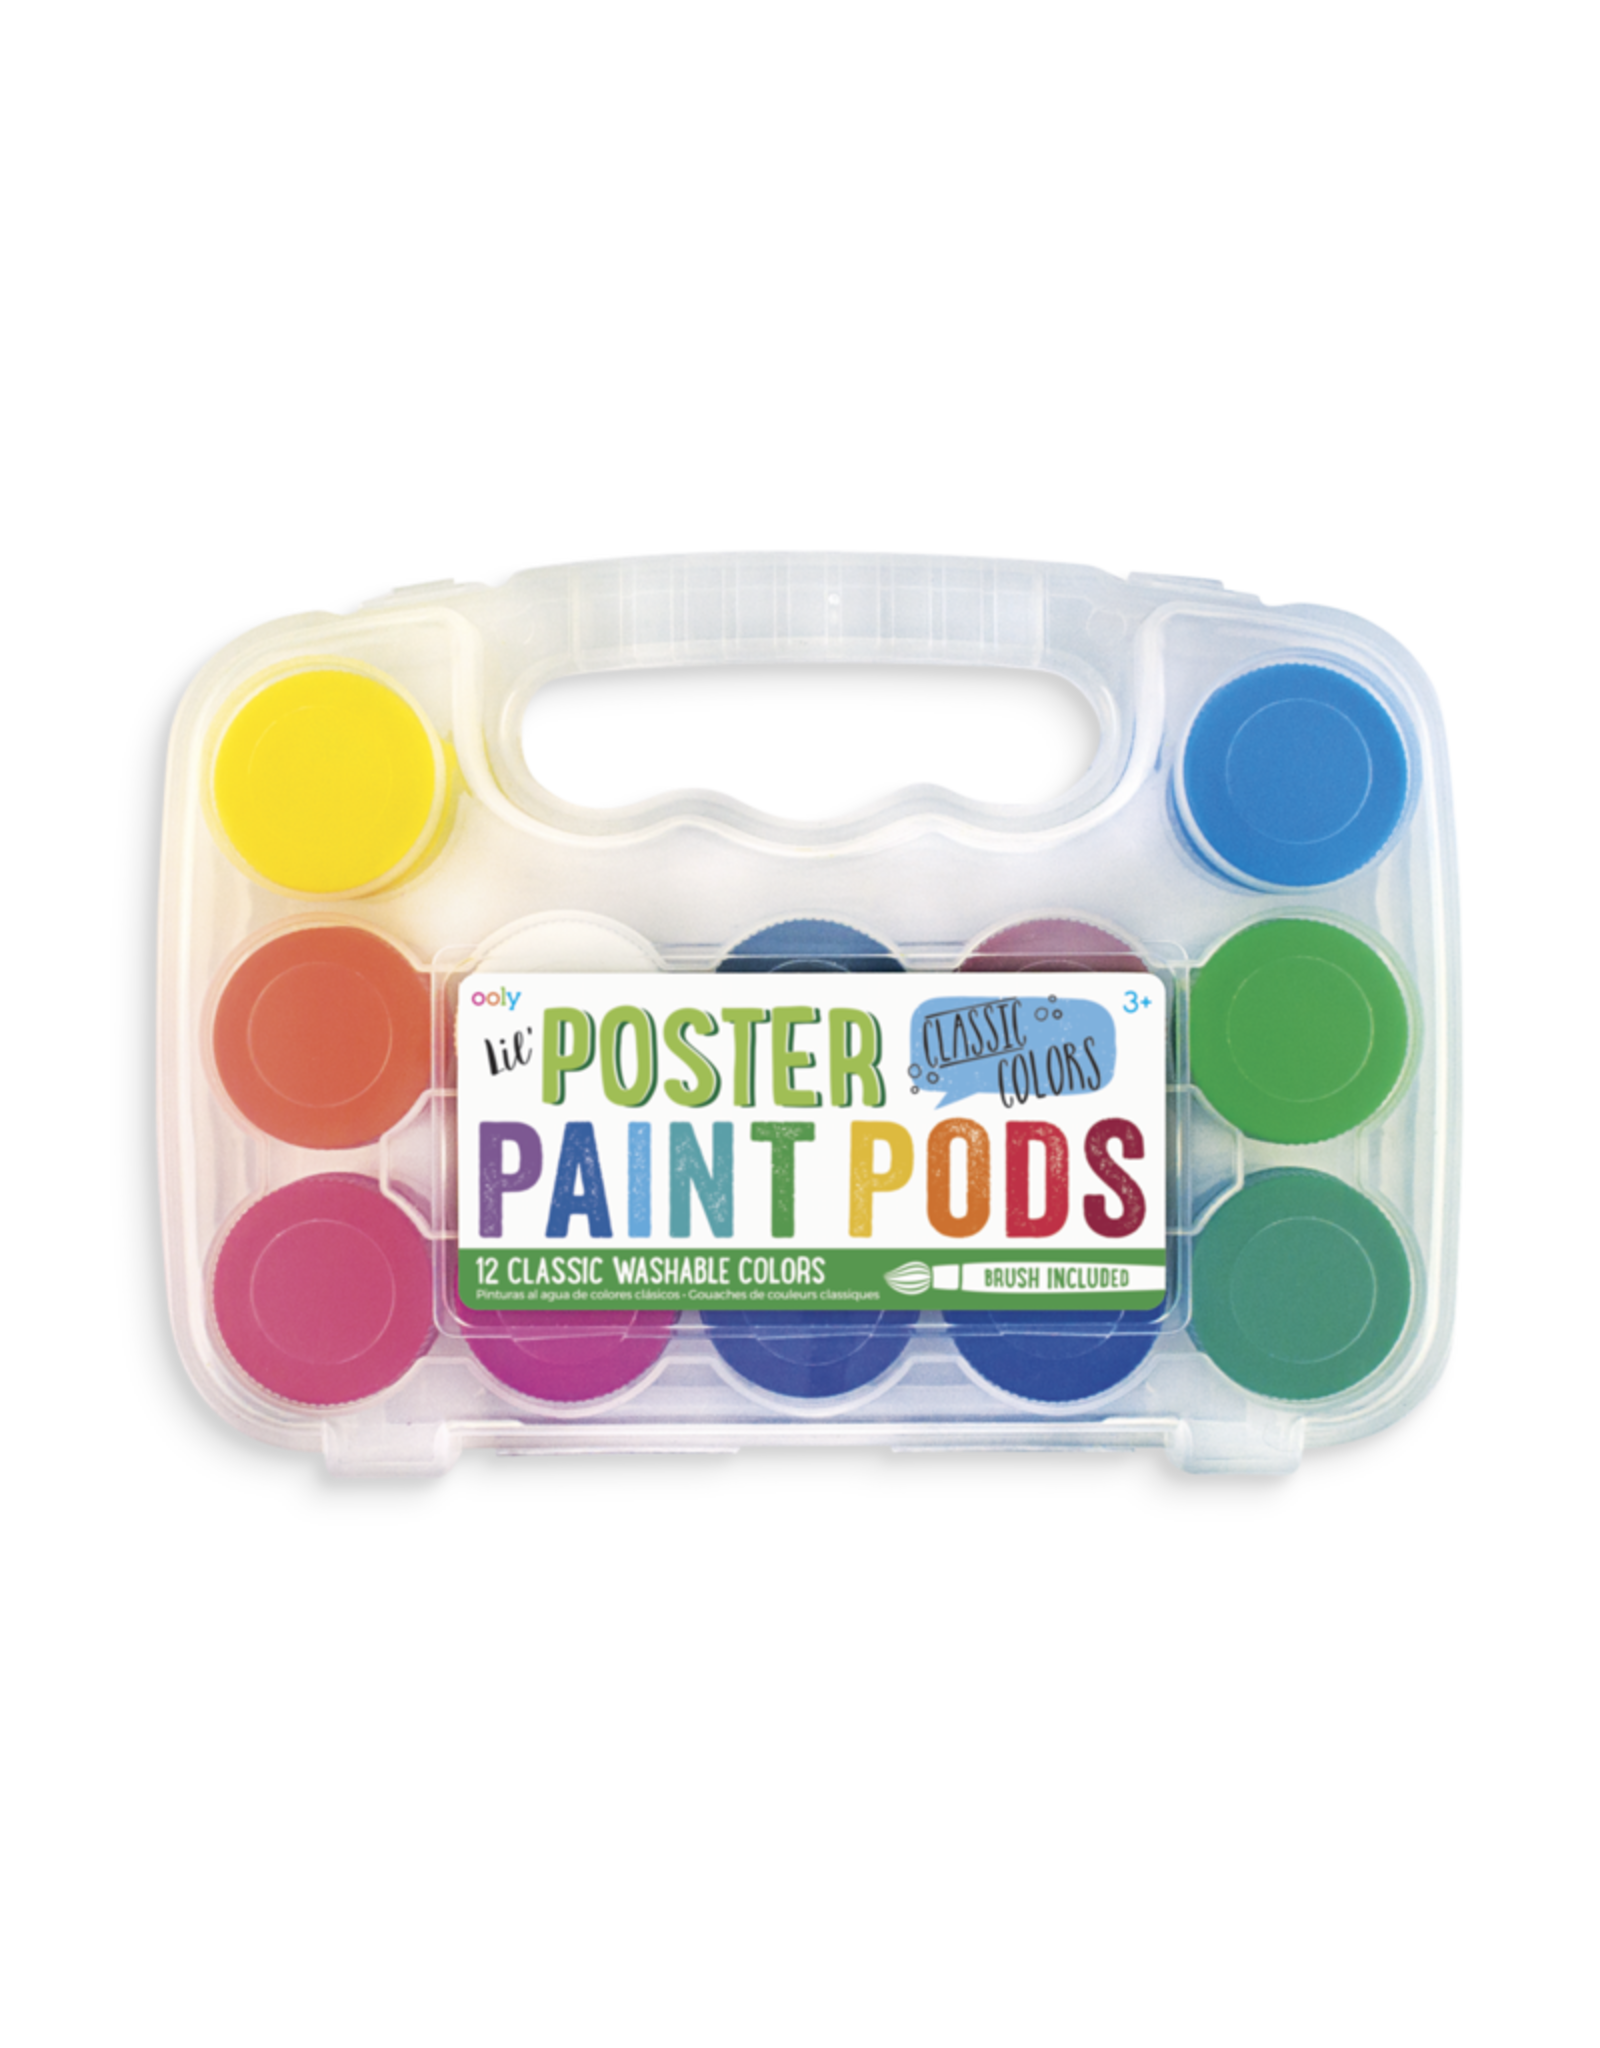 Ooly Lil' Poster Paint Pods - Classic Colors